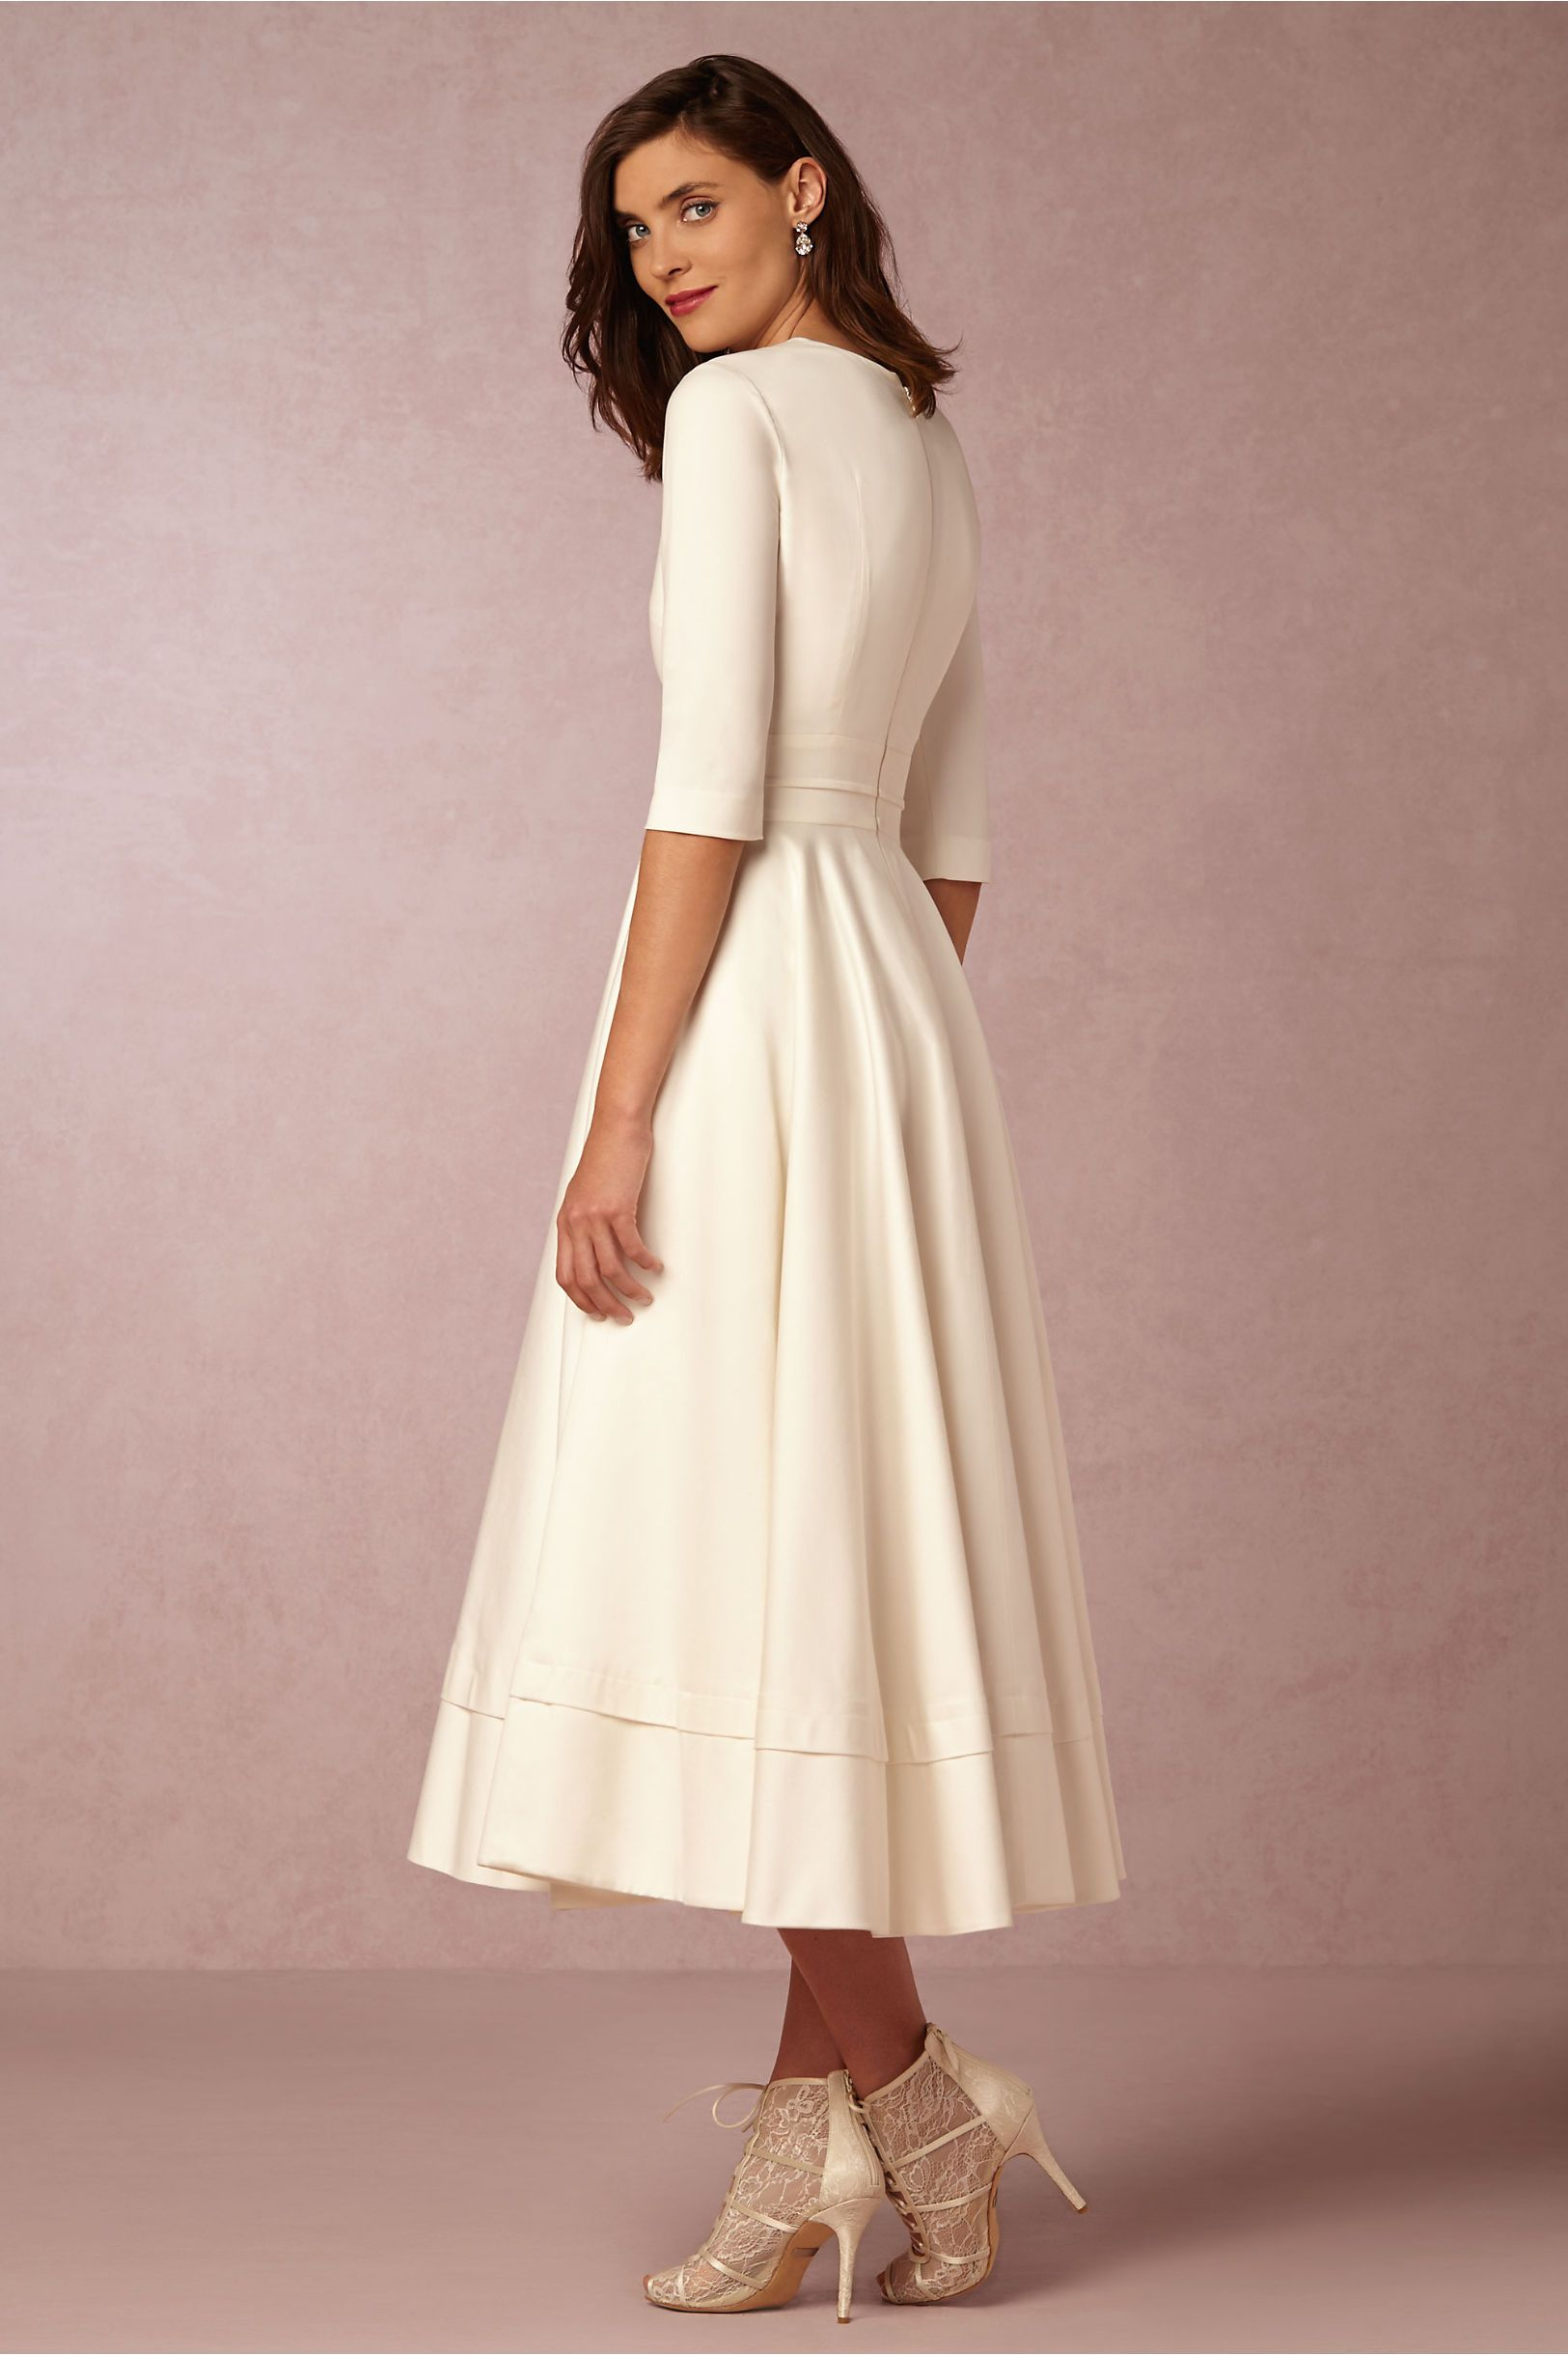 Prospere Gown in Bride Wedding Dresses at BHLDN | if i ever get ...